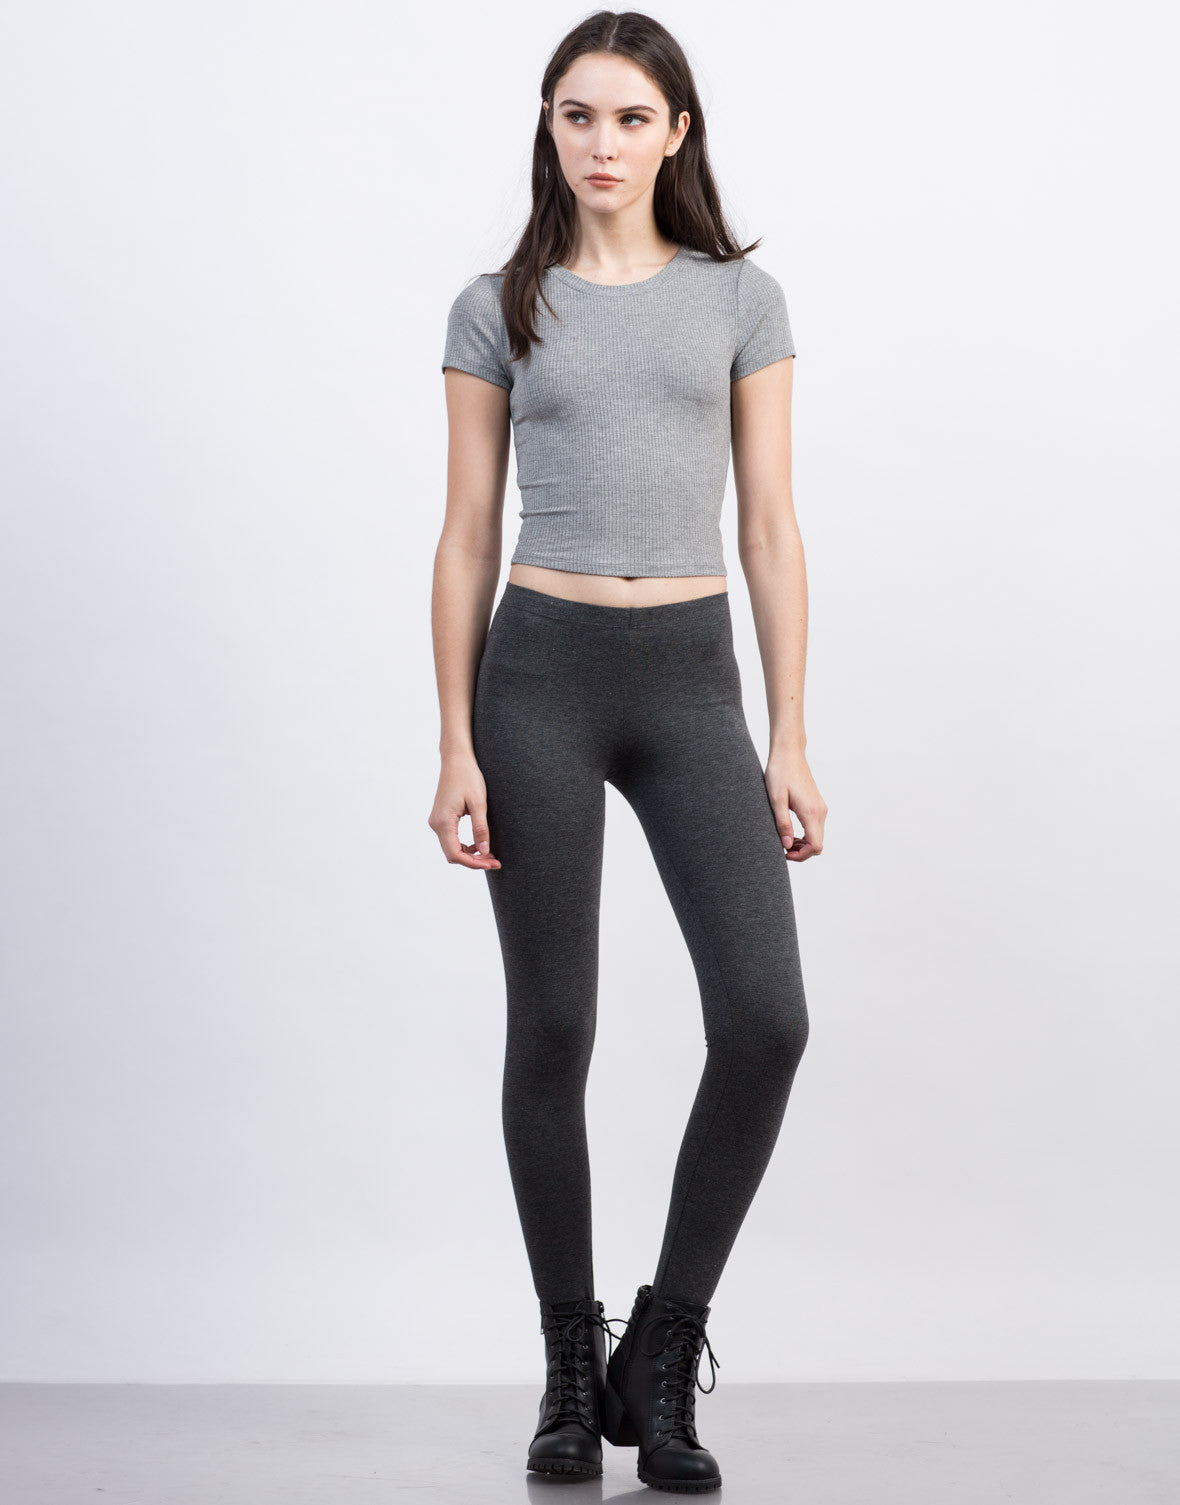 Front View of Stirrup Leggings